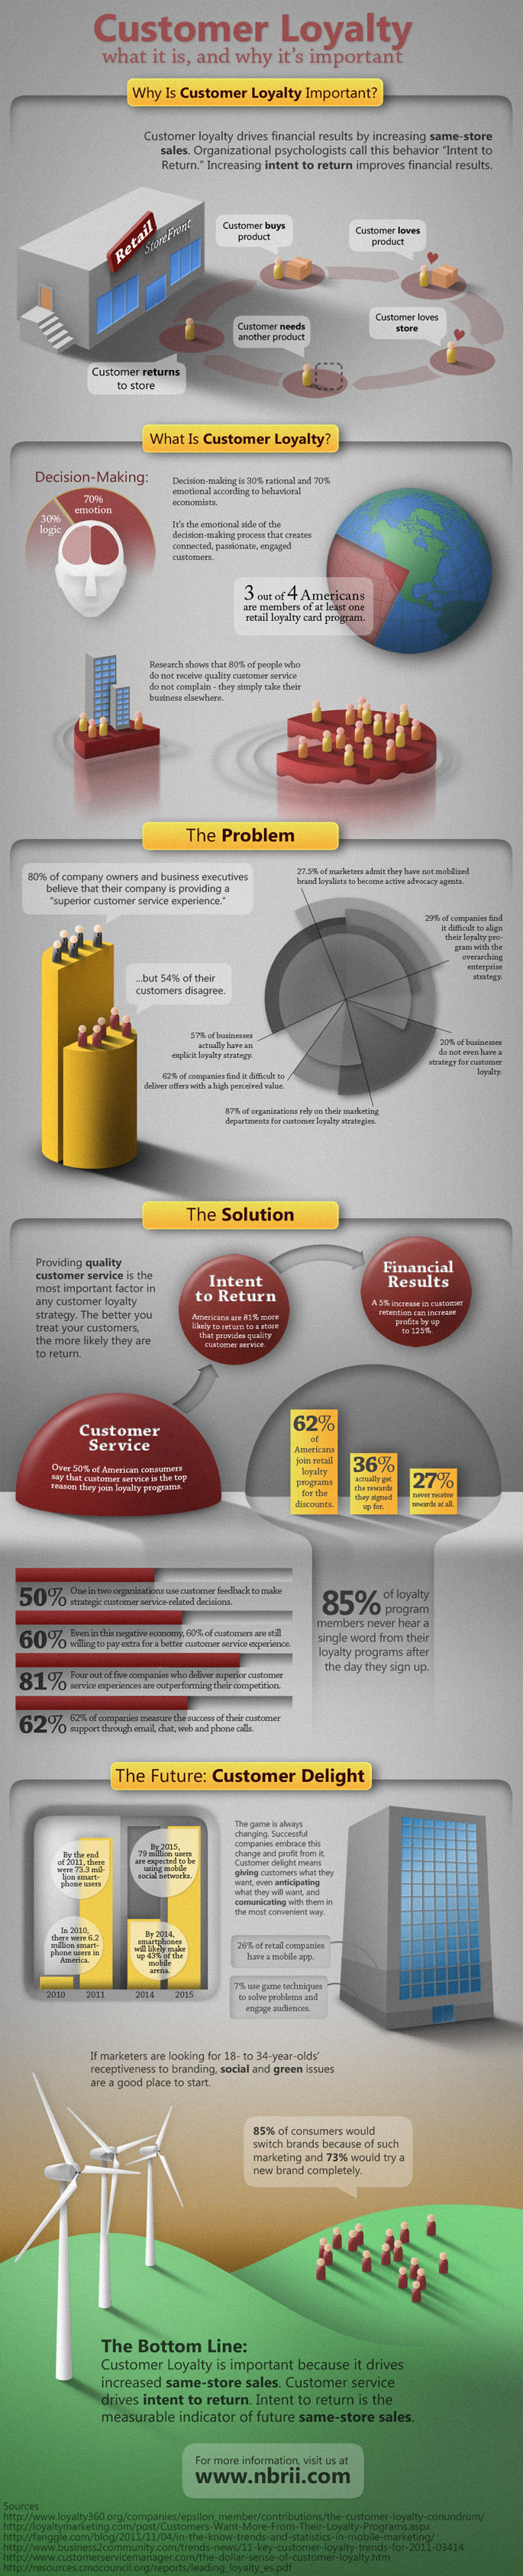 Customer Loyalty and Why its Important [Infographic] image infographic smaller4